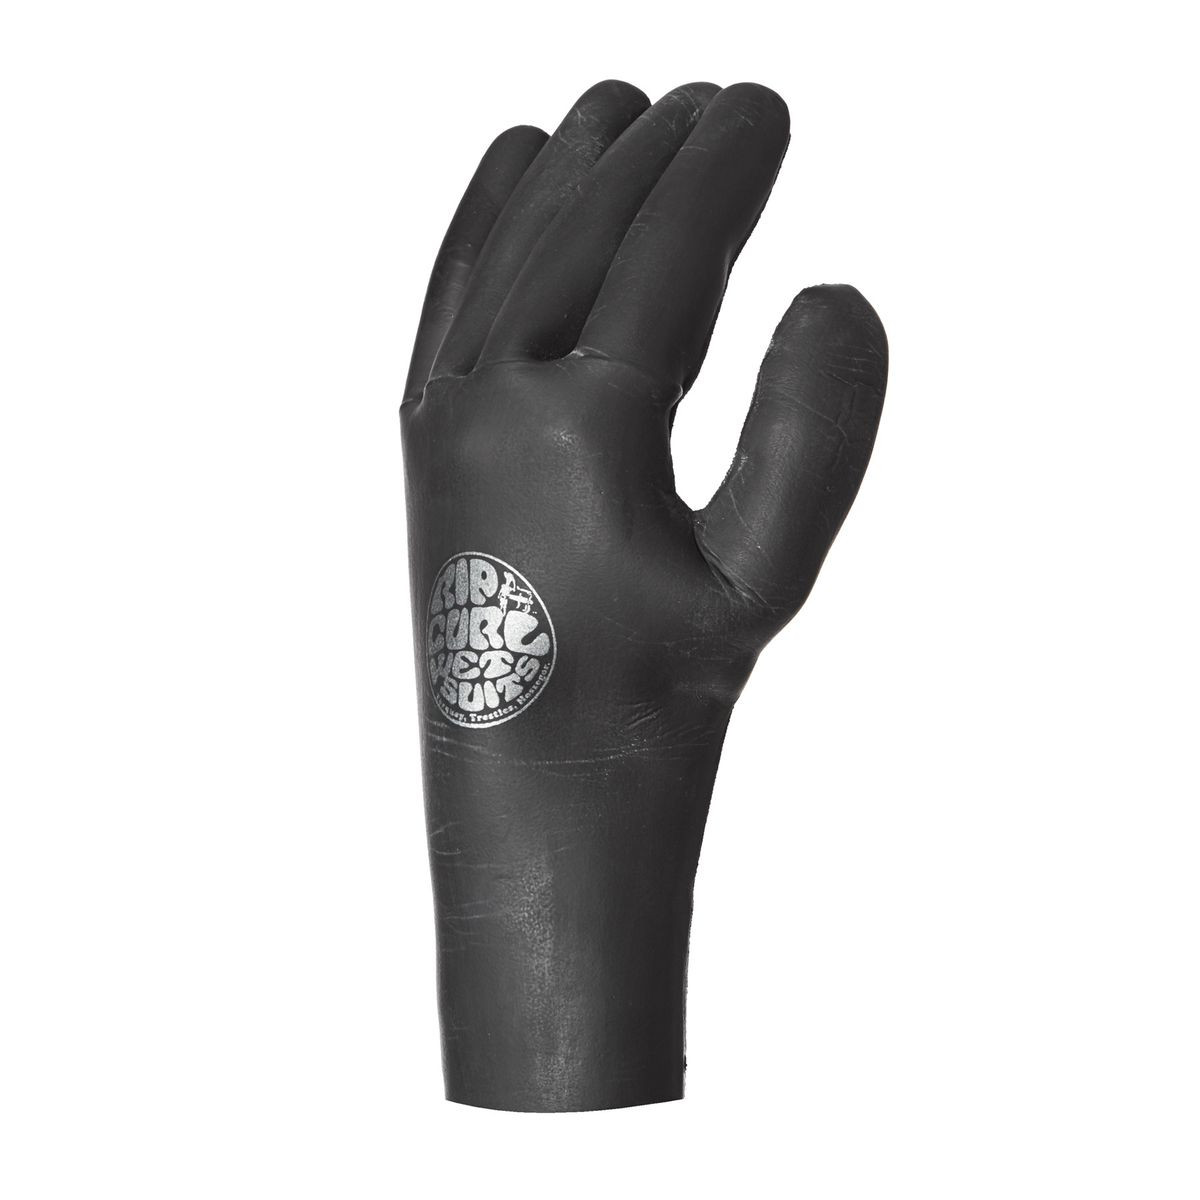 Rip Curl Rubber Soul 3mm 5 Finger Wetsuit Gloves - Black